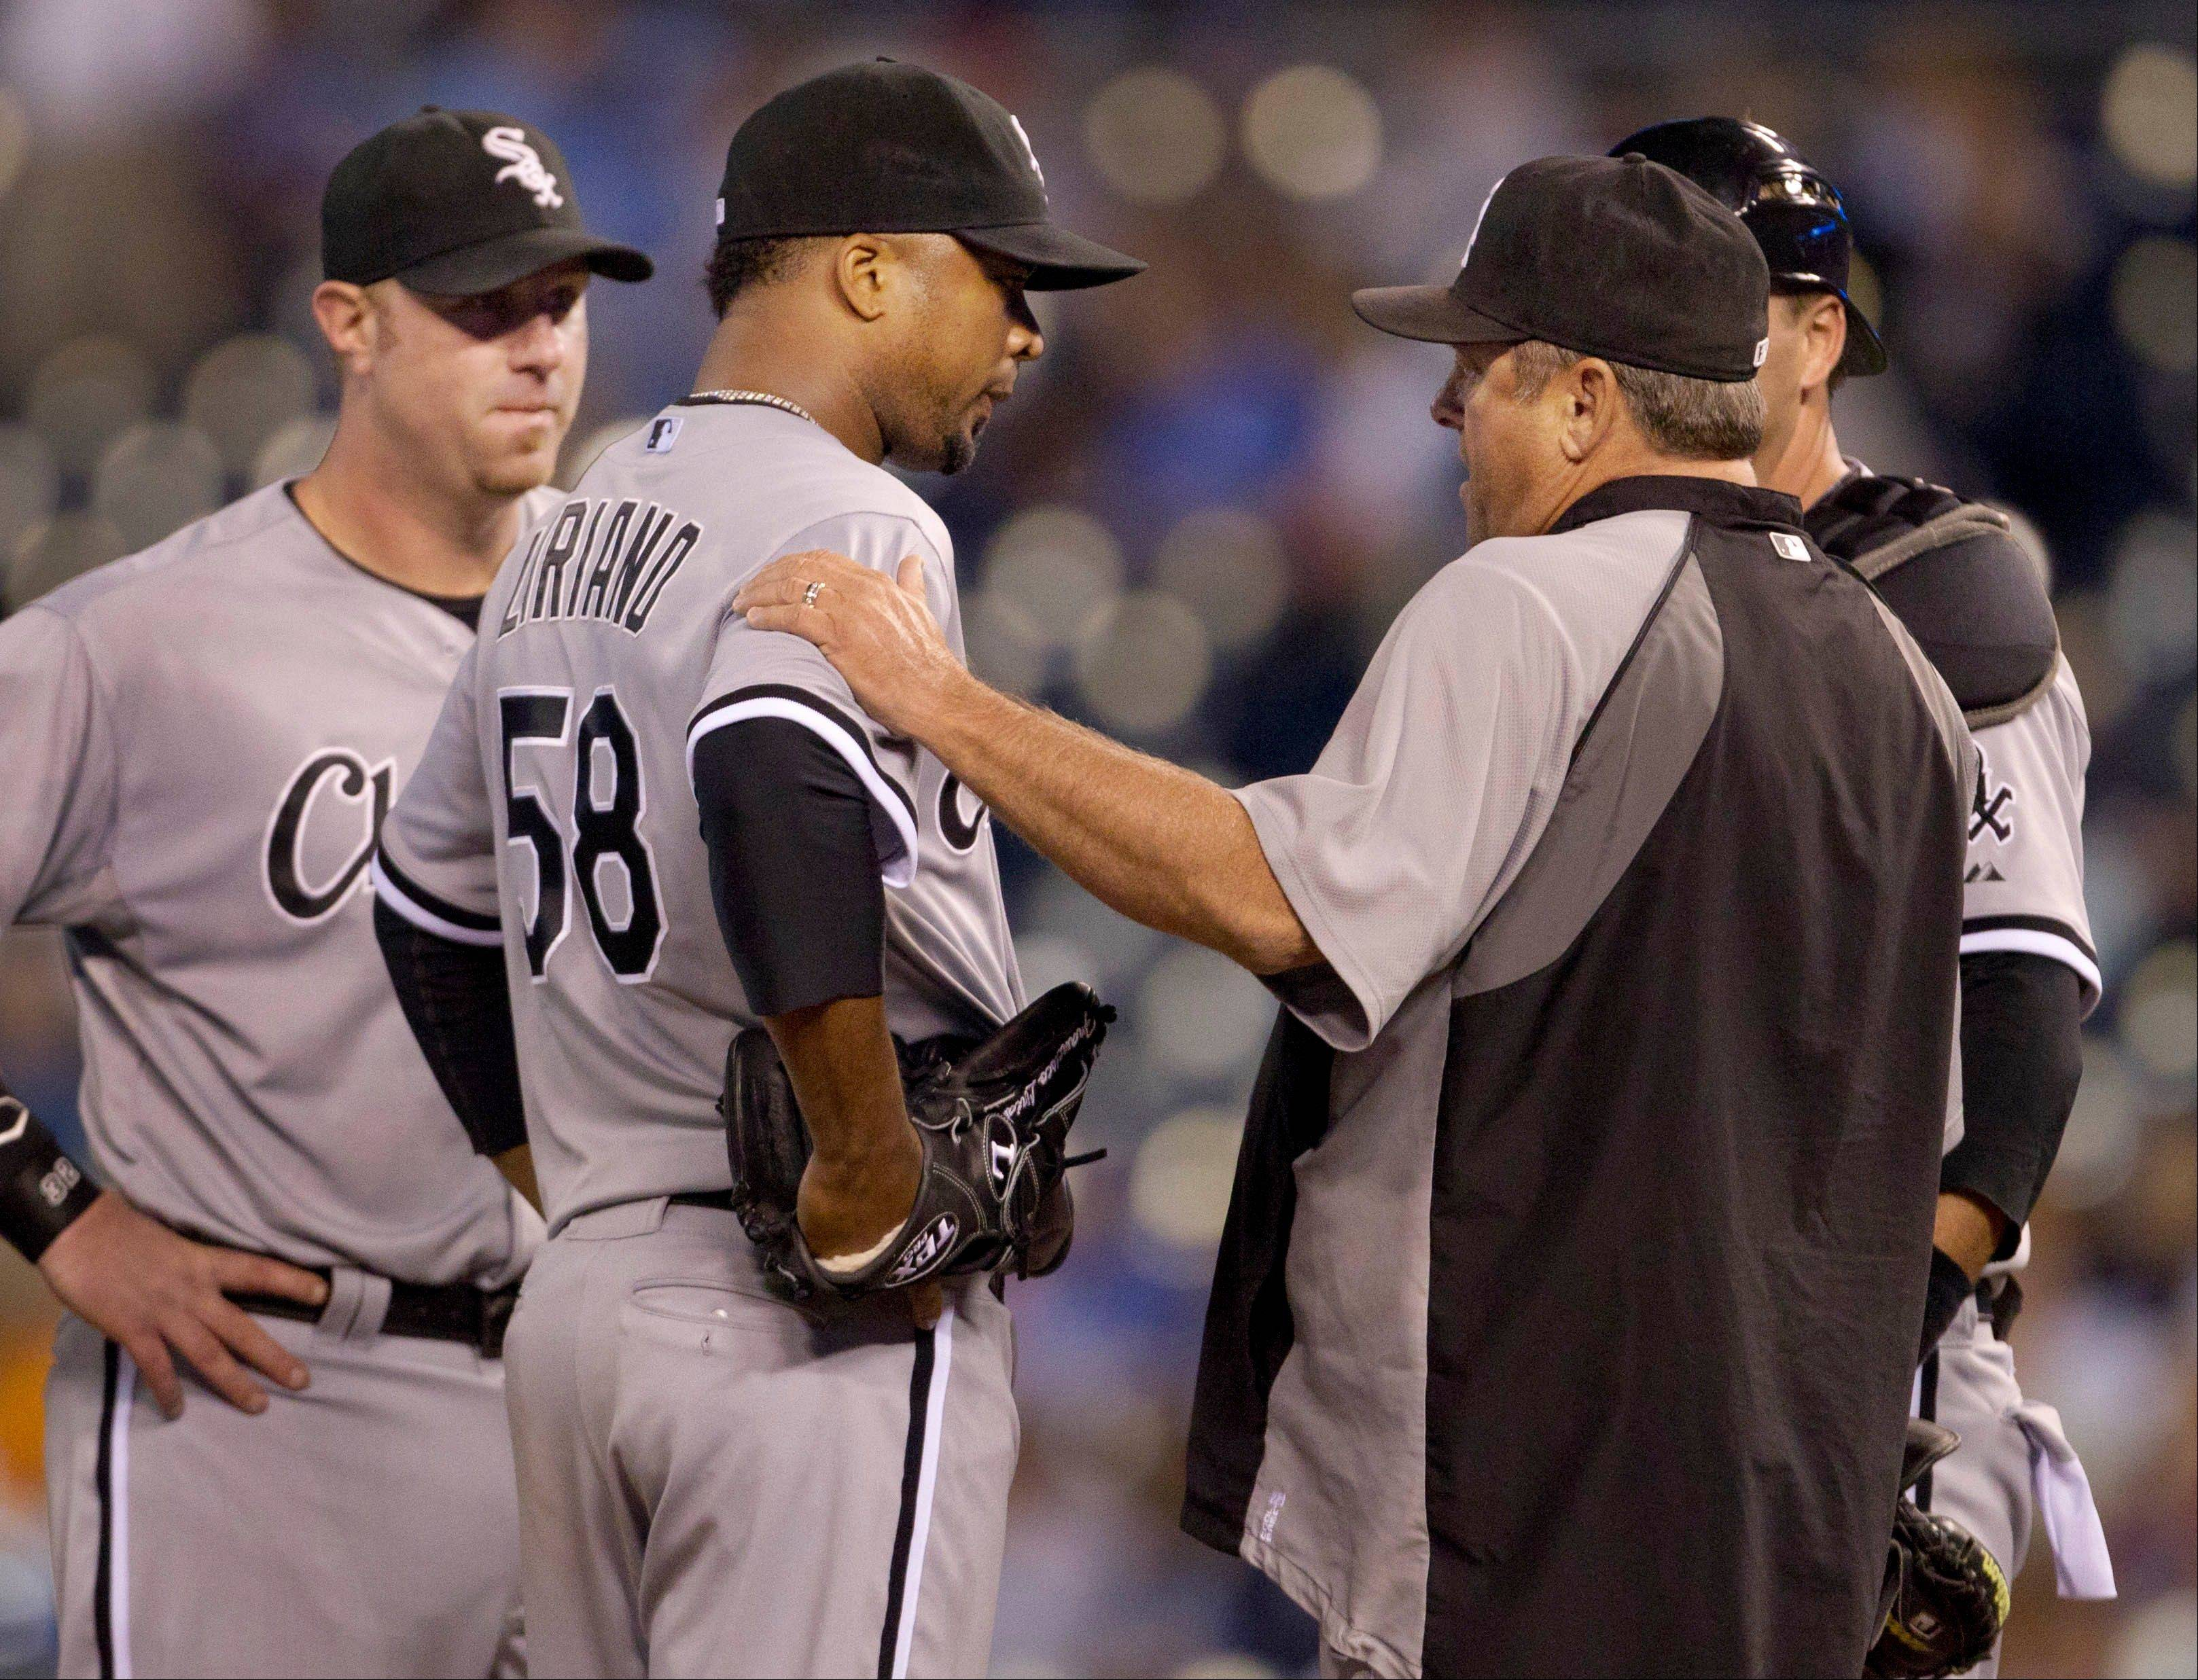 White Sox miss chances, fall to Royals